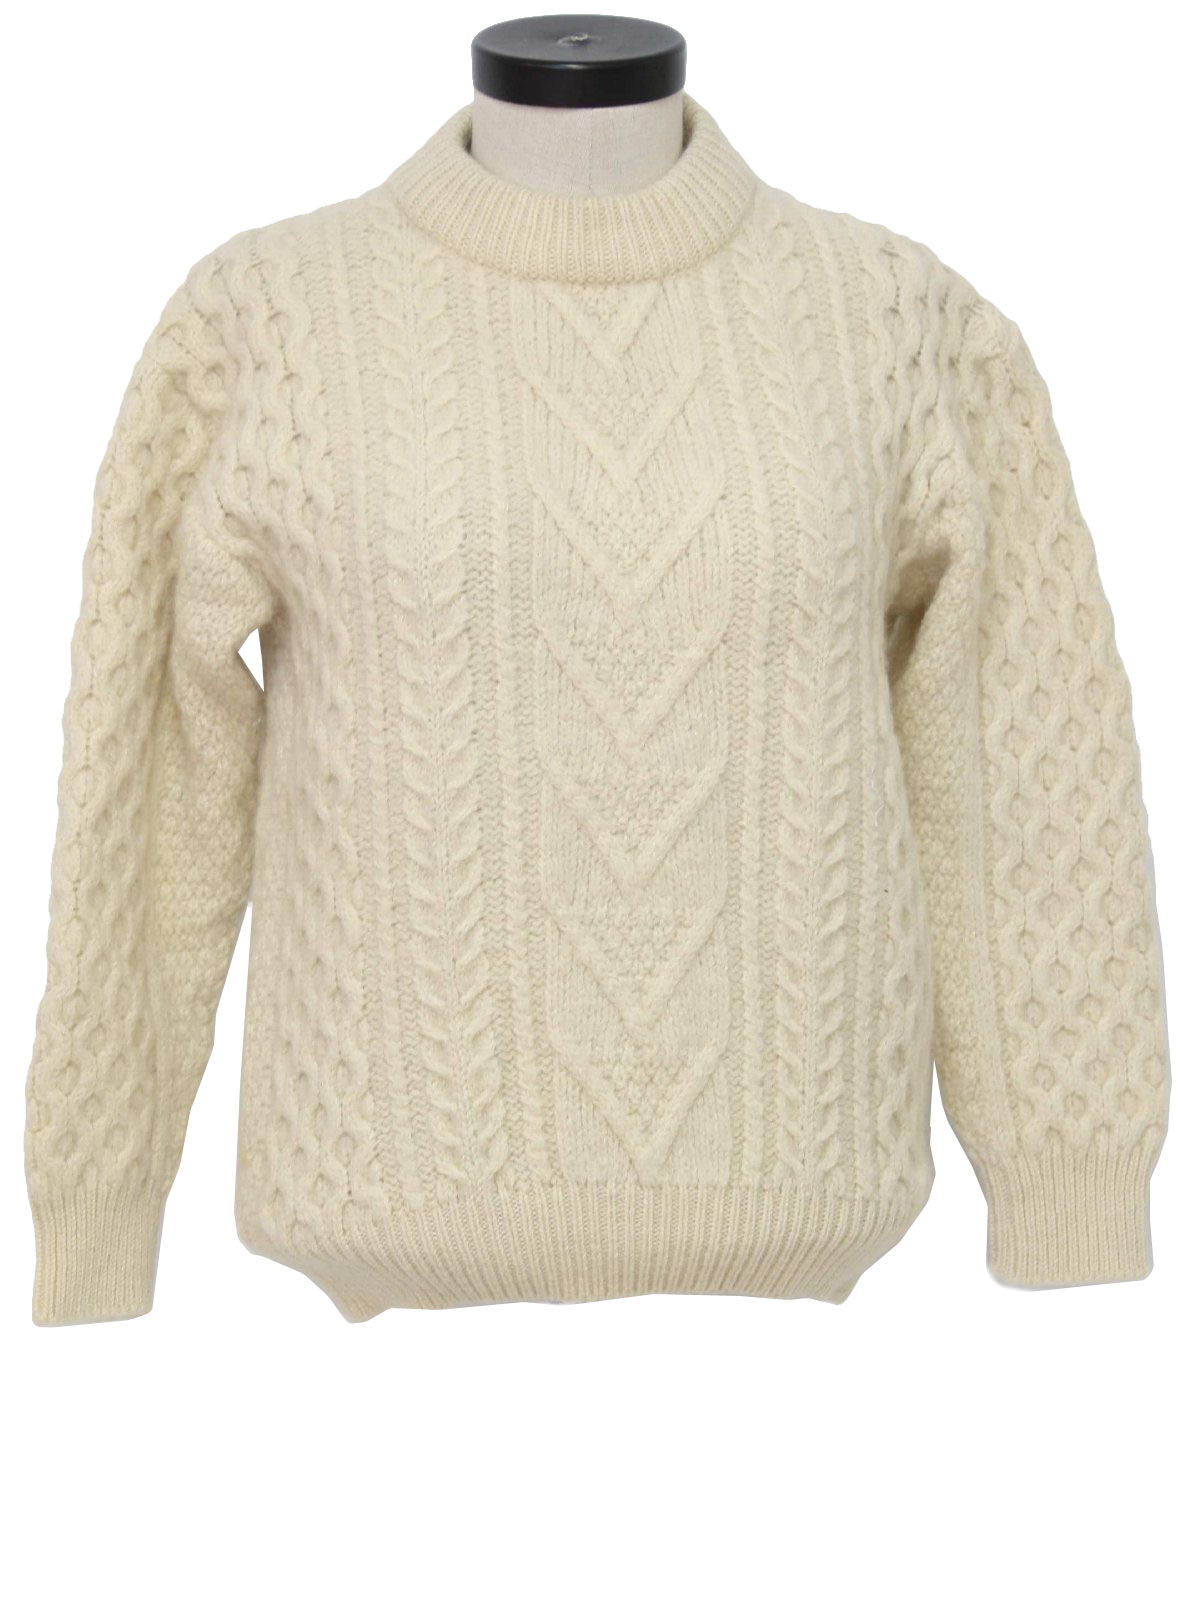 Seventies Vintage Sweater: 70s -James Peingle Scottish Fashions ...